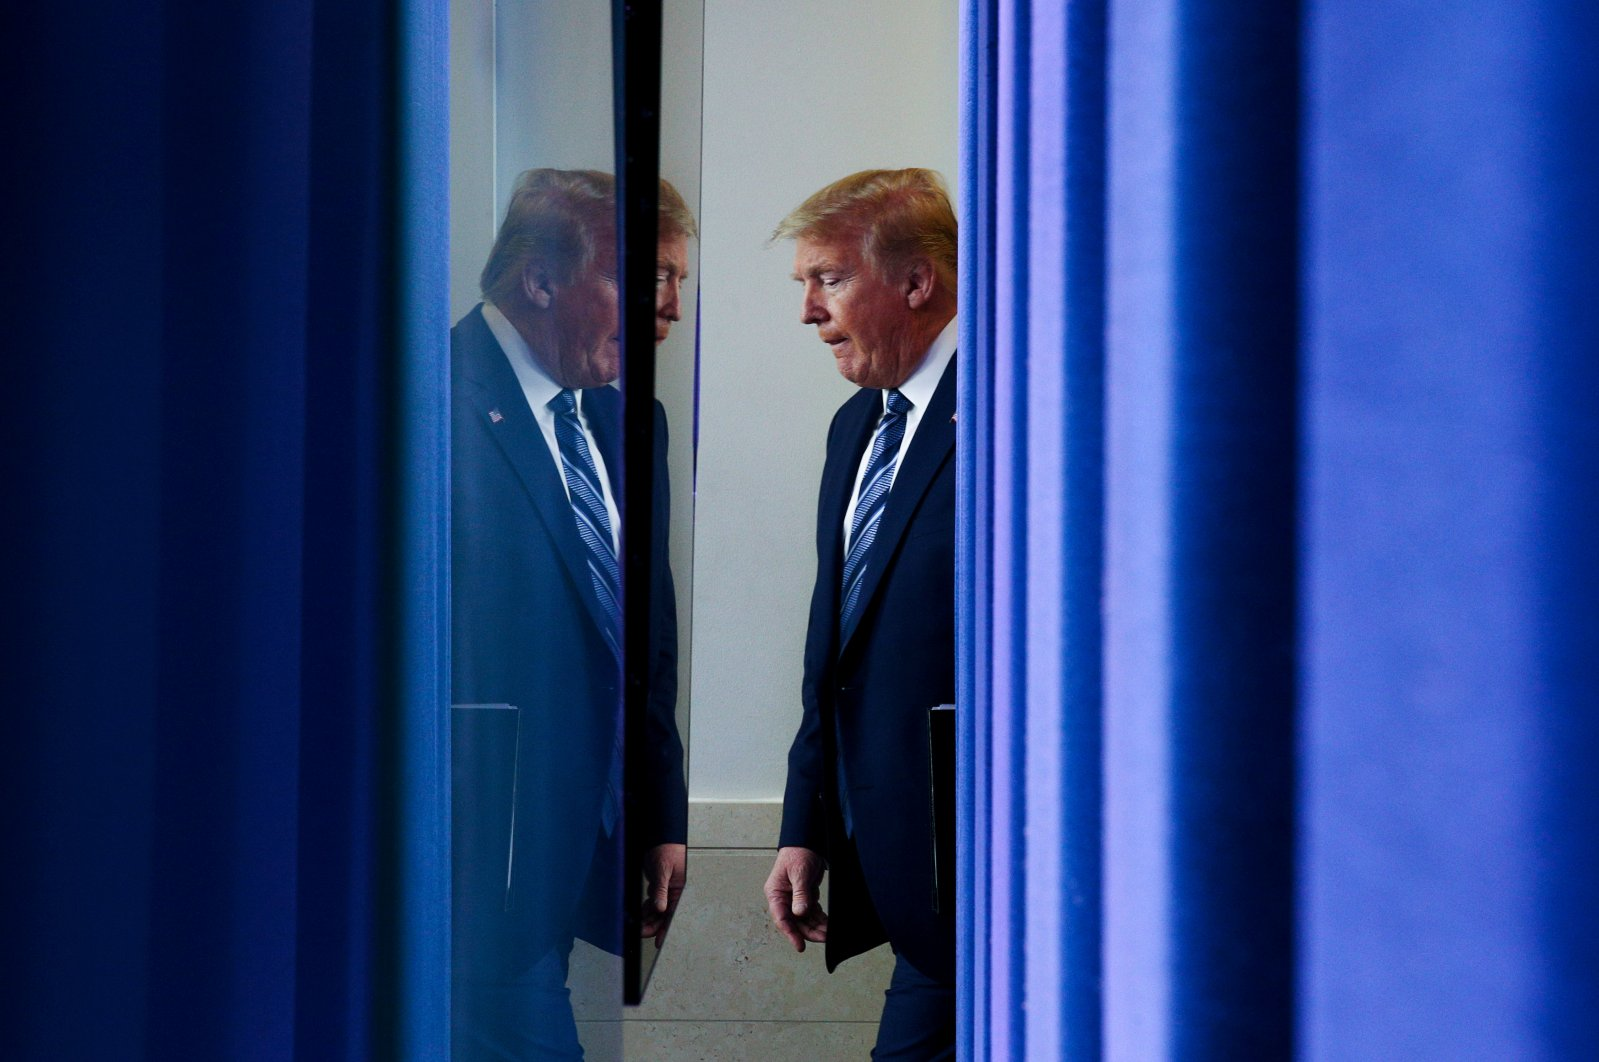 U.S. President Donald Trump arrives to lead the daily coronavirus task force briefing as seen from behind the backdrop of the Brady press briefing room at the White House in Washington, U.S., April 21, 2020. (Reuters Photo)